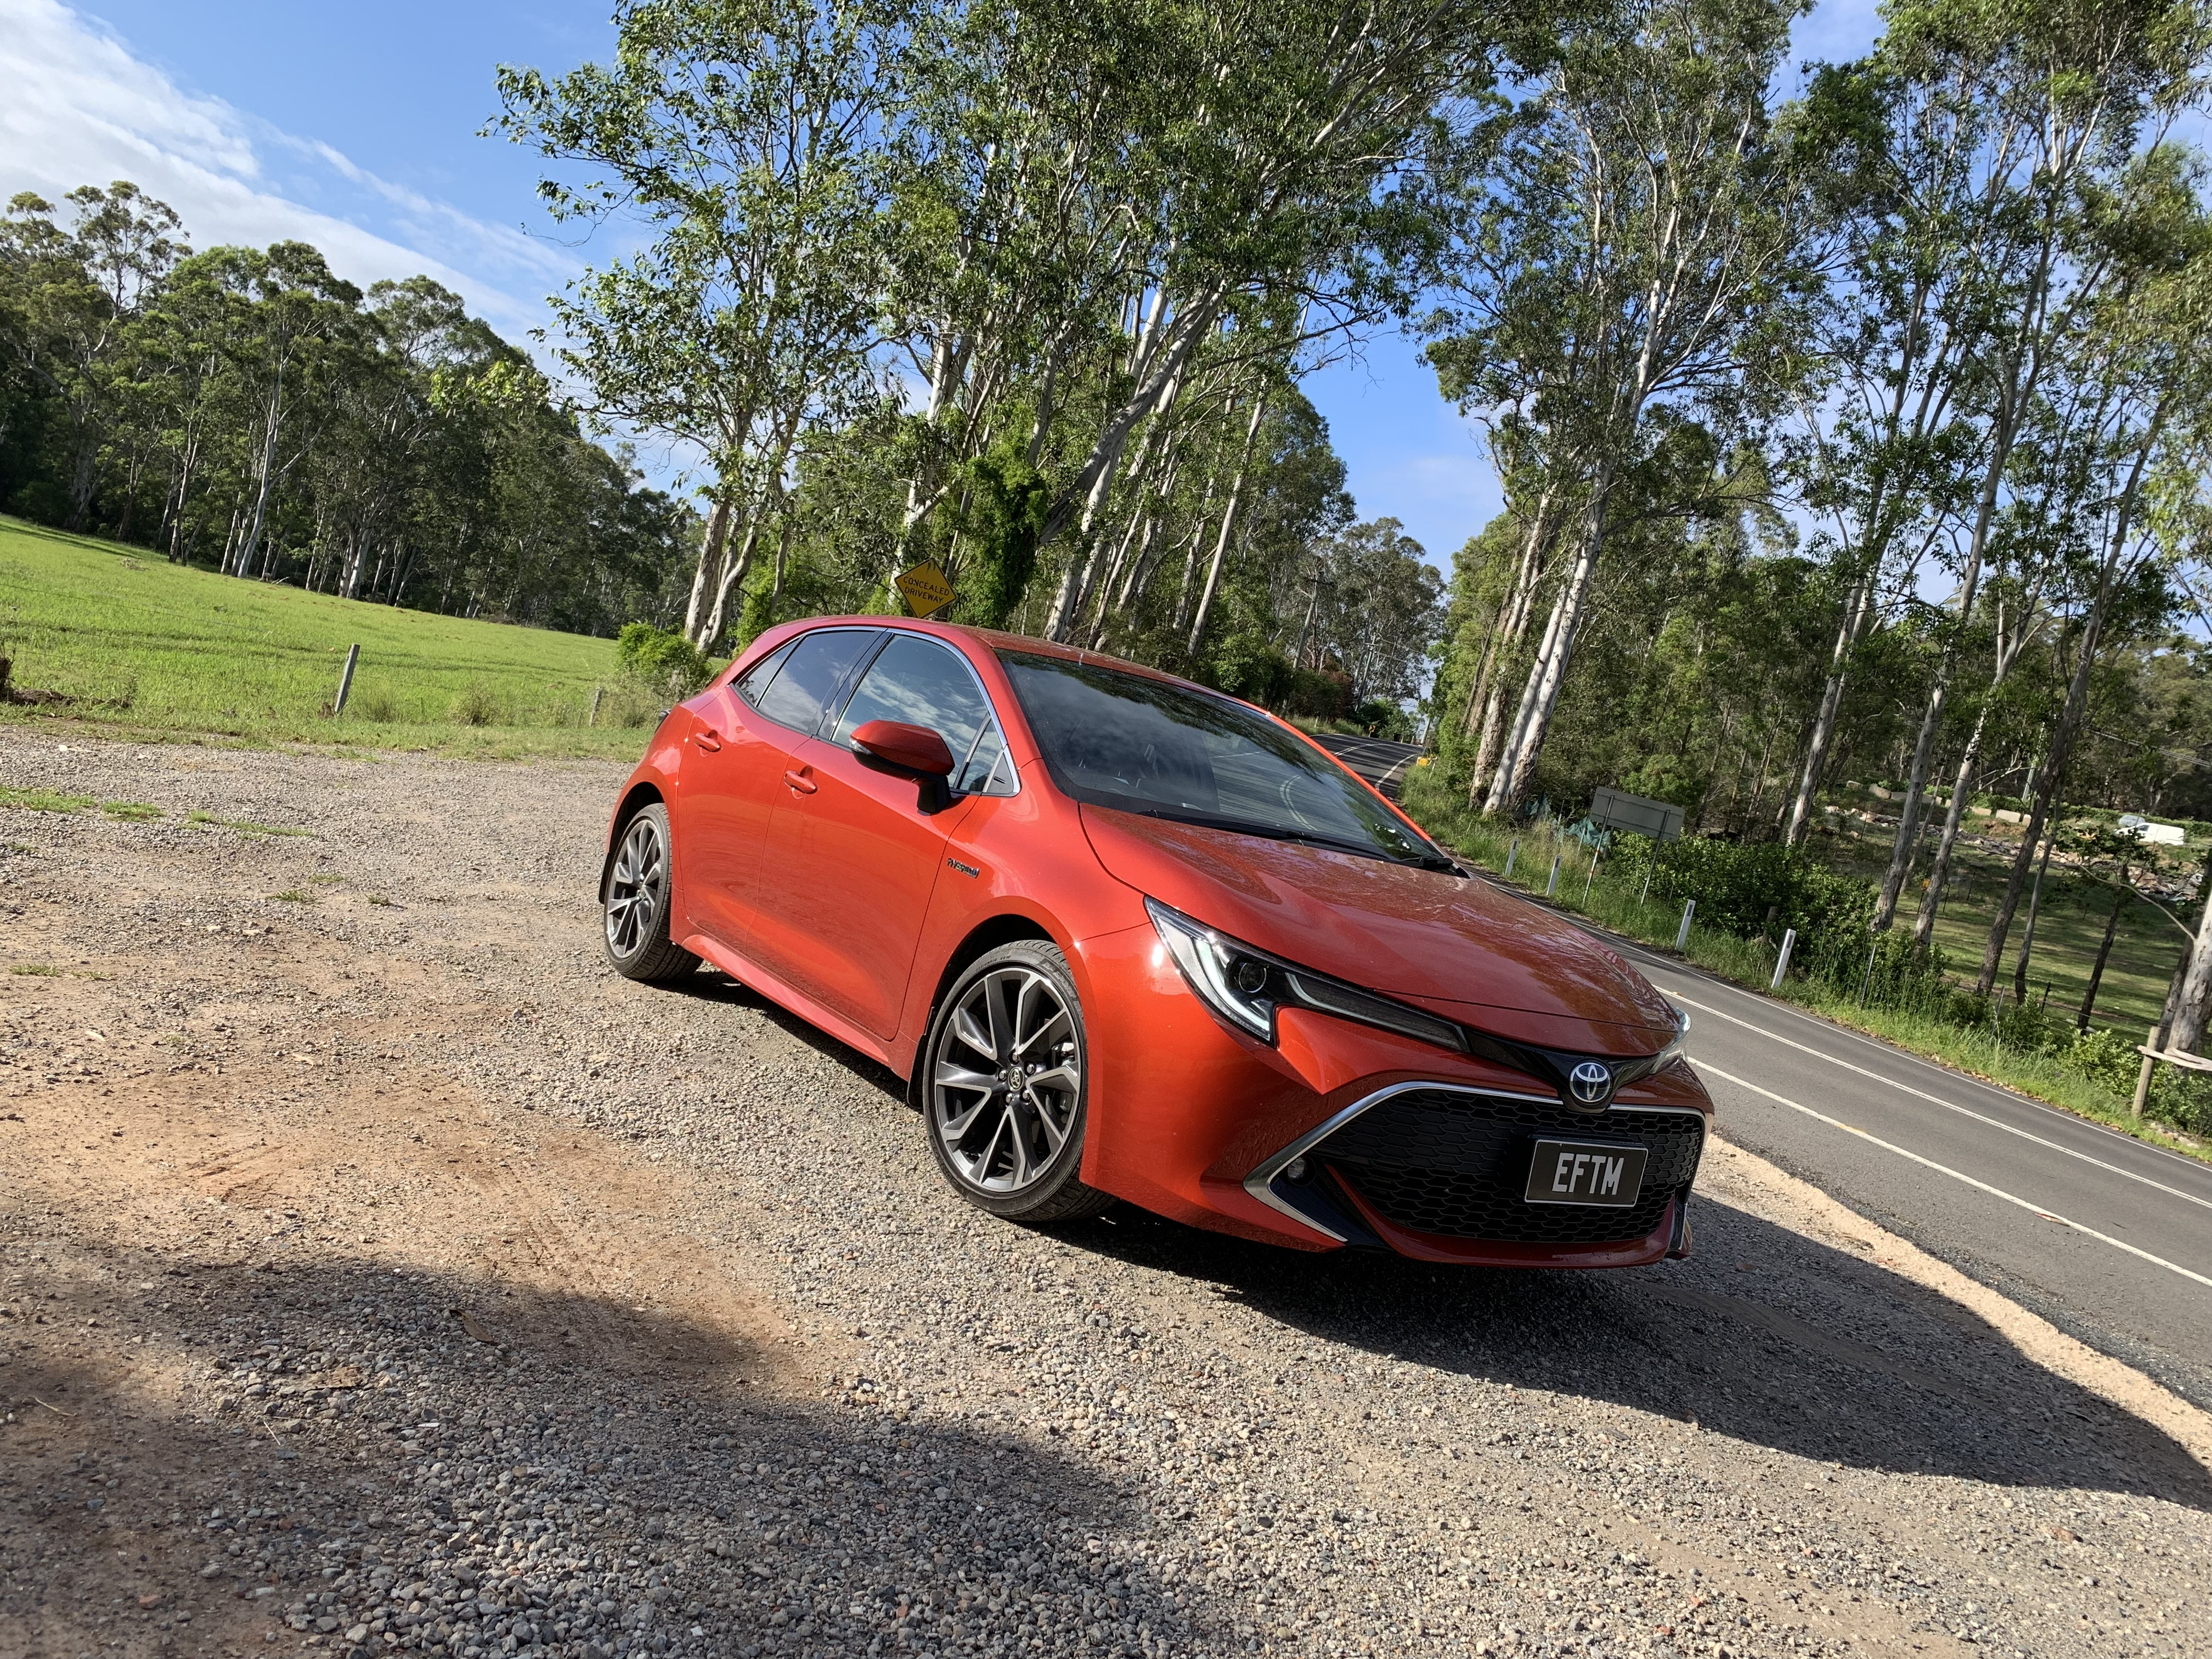 2019 Toyota Corolla Zr Hybrid Drive Review Eftm